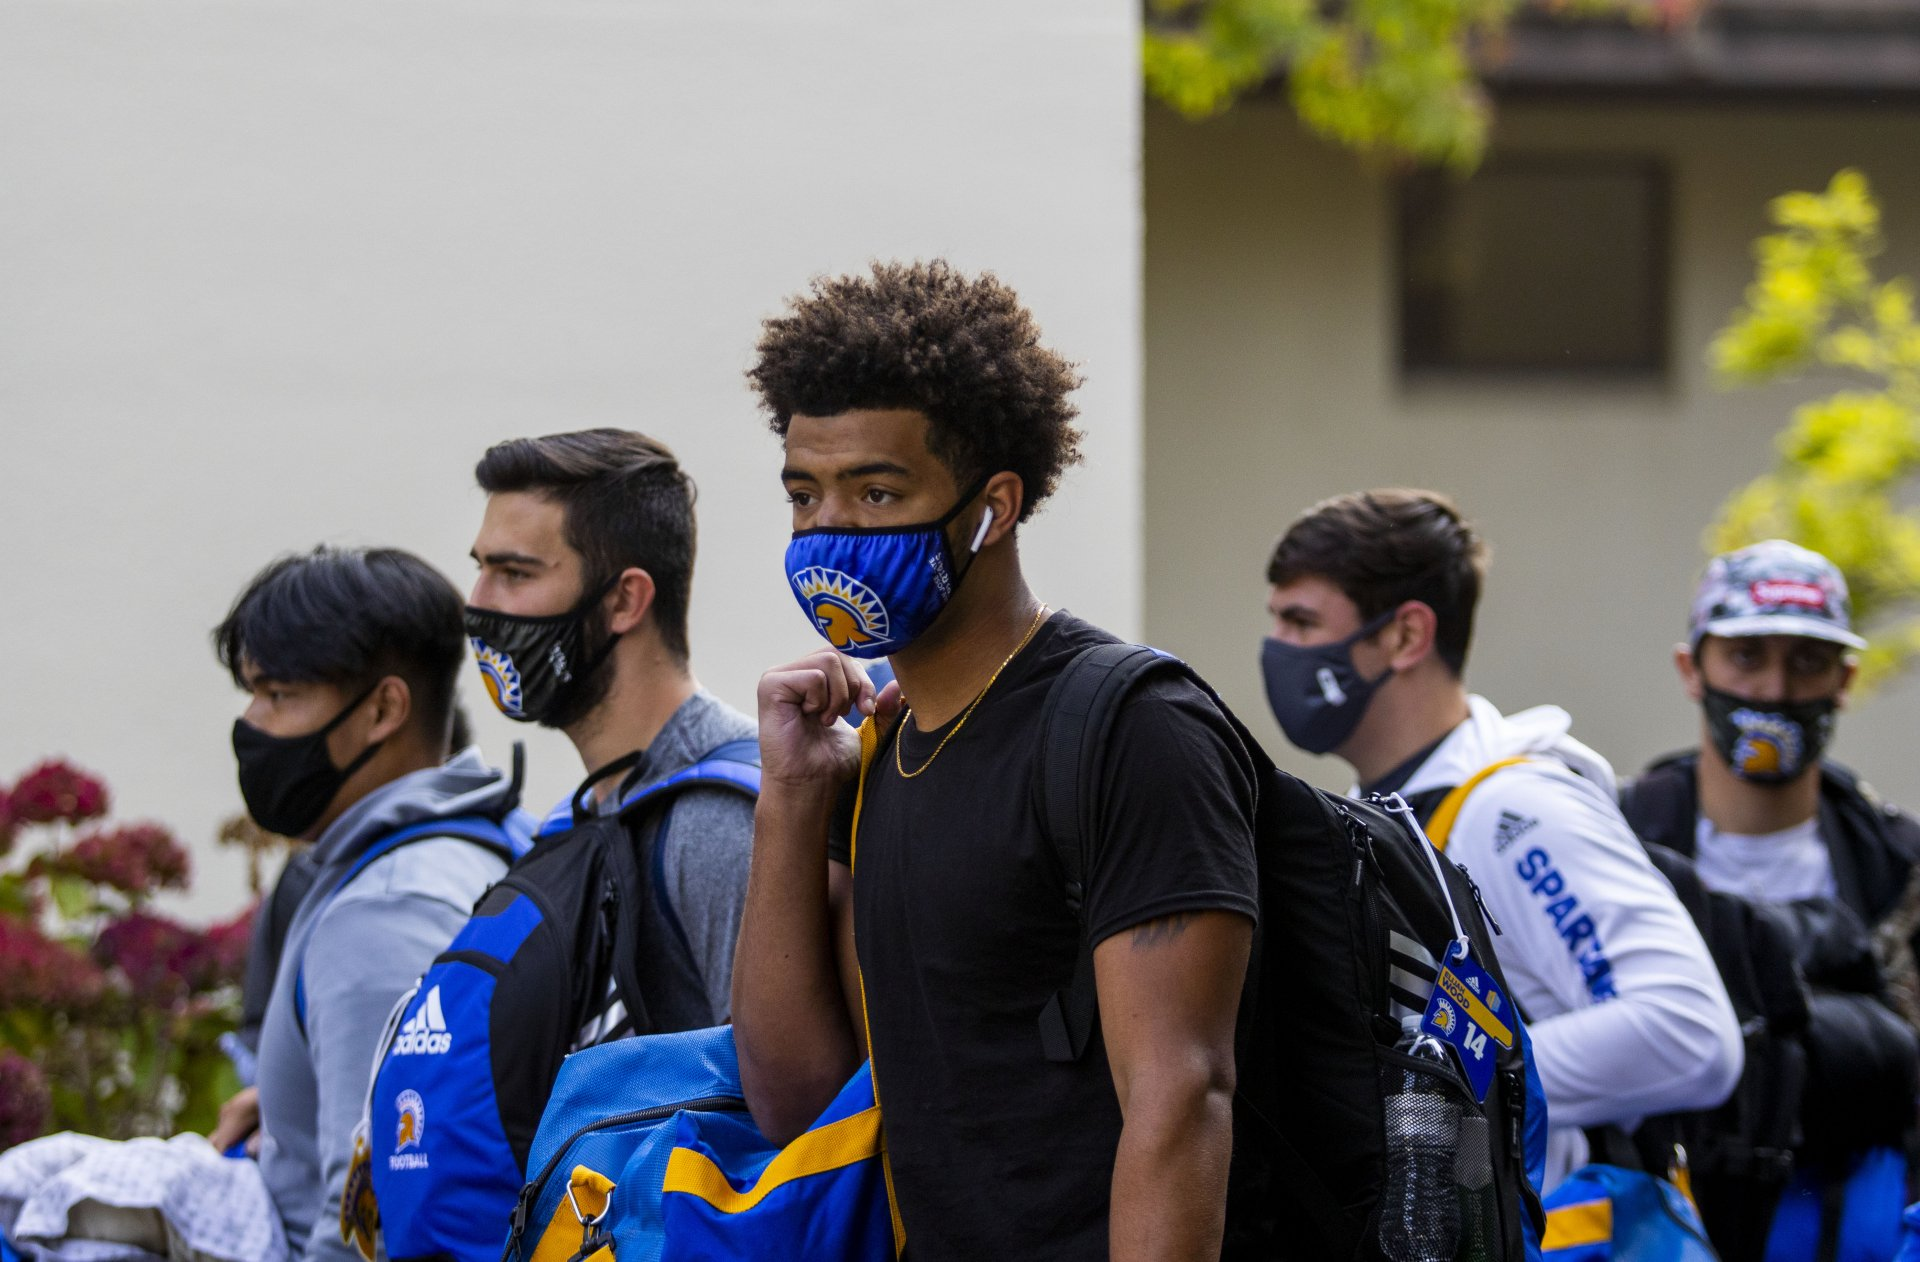 San Jose State Football players arrive on the Humboldt State University campus to start their training camp outside of Santa Clara County before the start of the season on Oct. 2 2020 | Photo by Thomas Lal